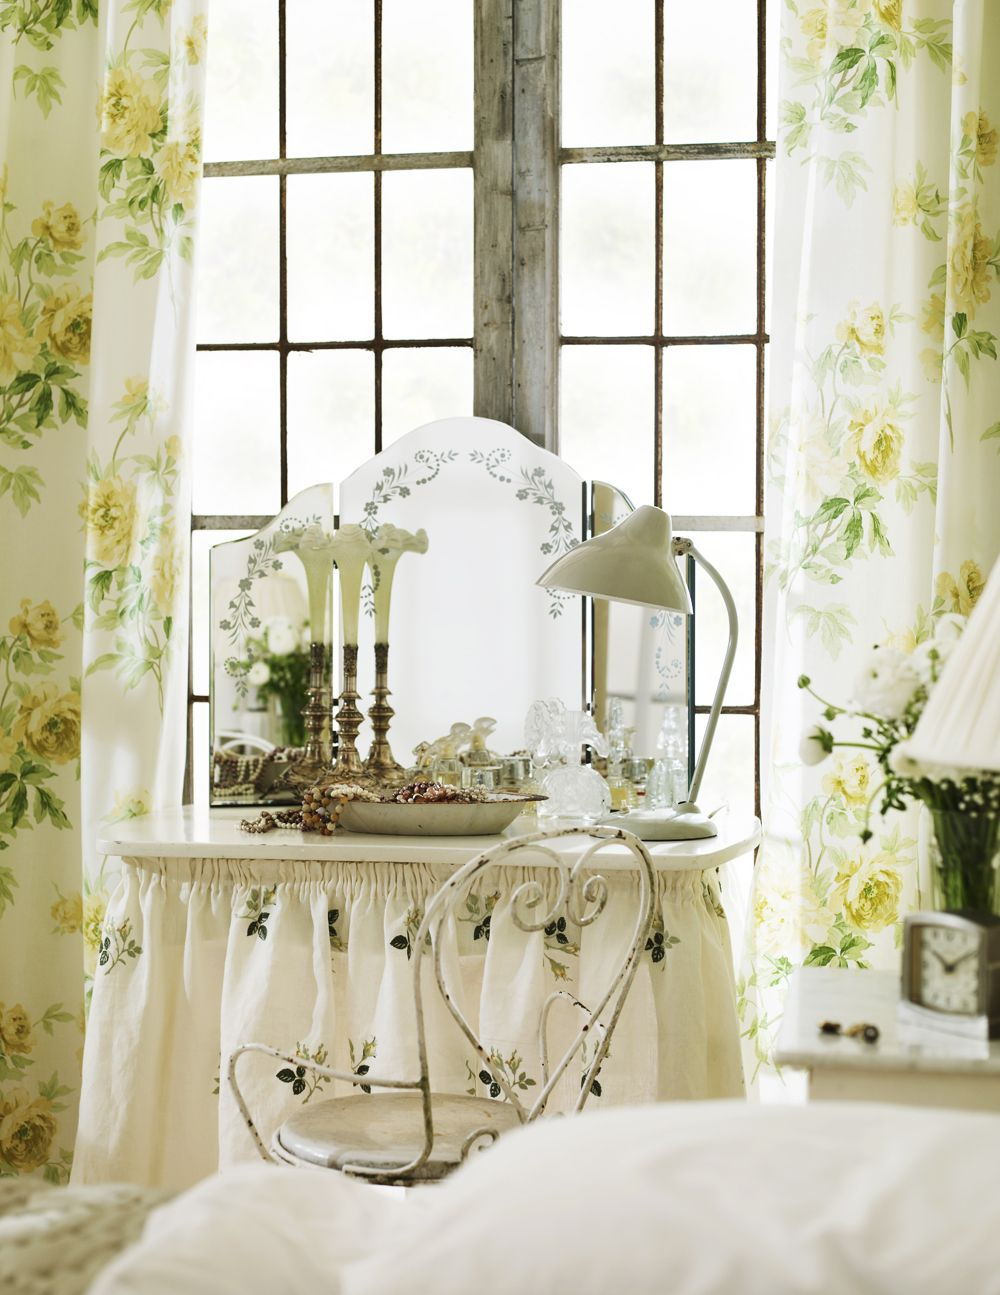 Skirted dressing table adorned with roses #dressing_room #floral #vanity